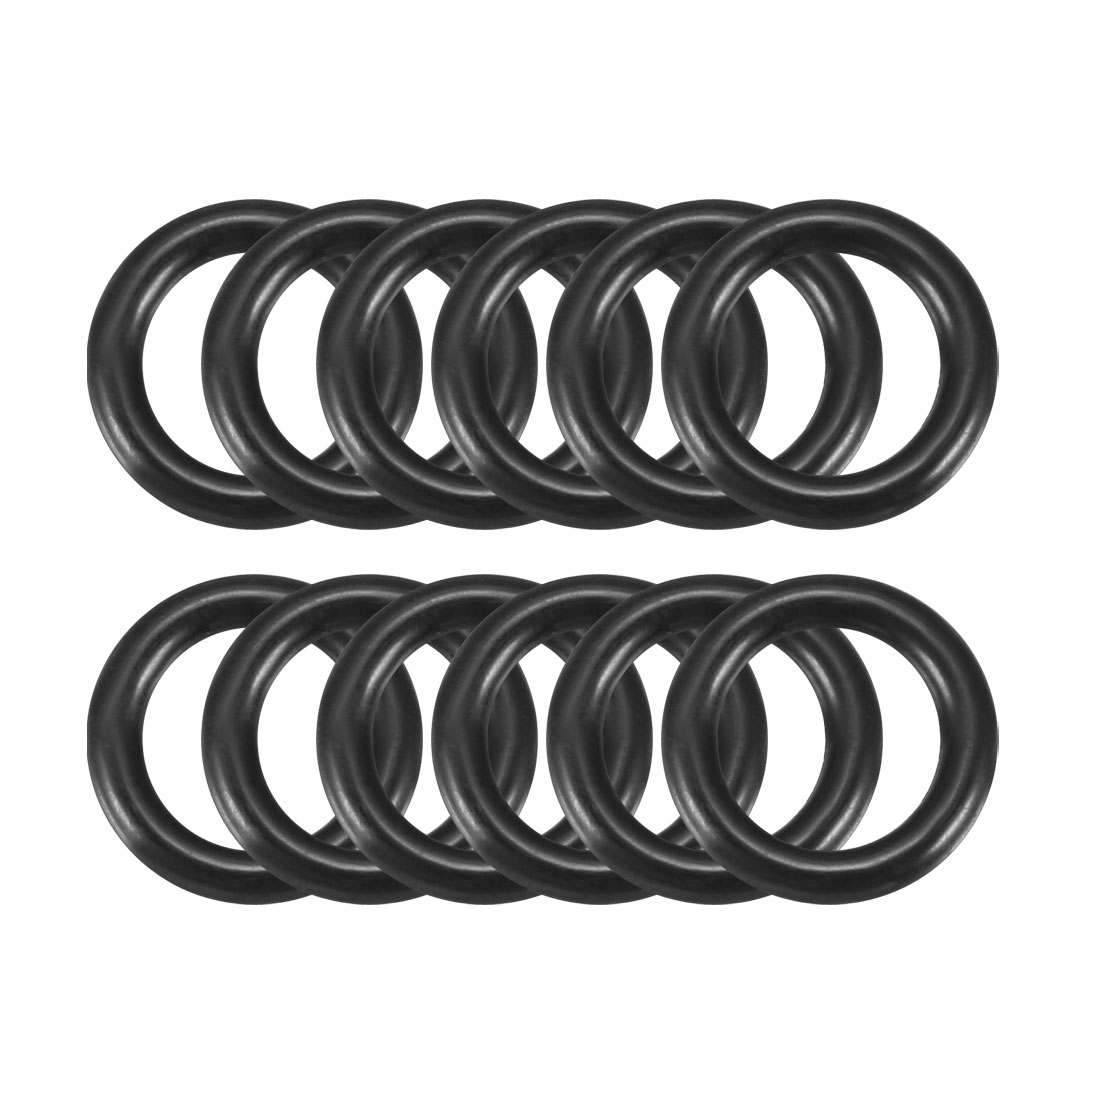 Black 11.5mm x 2.0mm Rubber Sealing Washers Oil Seal O Rings 12 Pcs